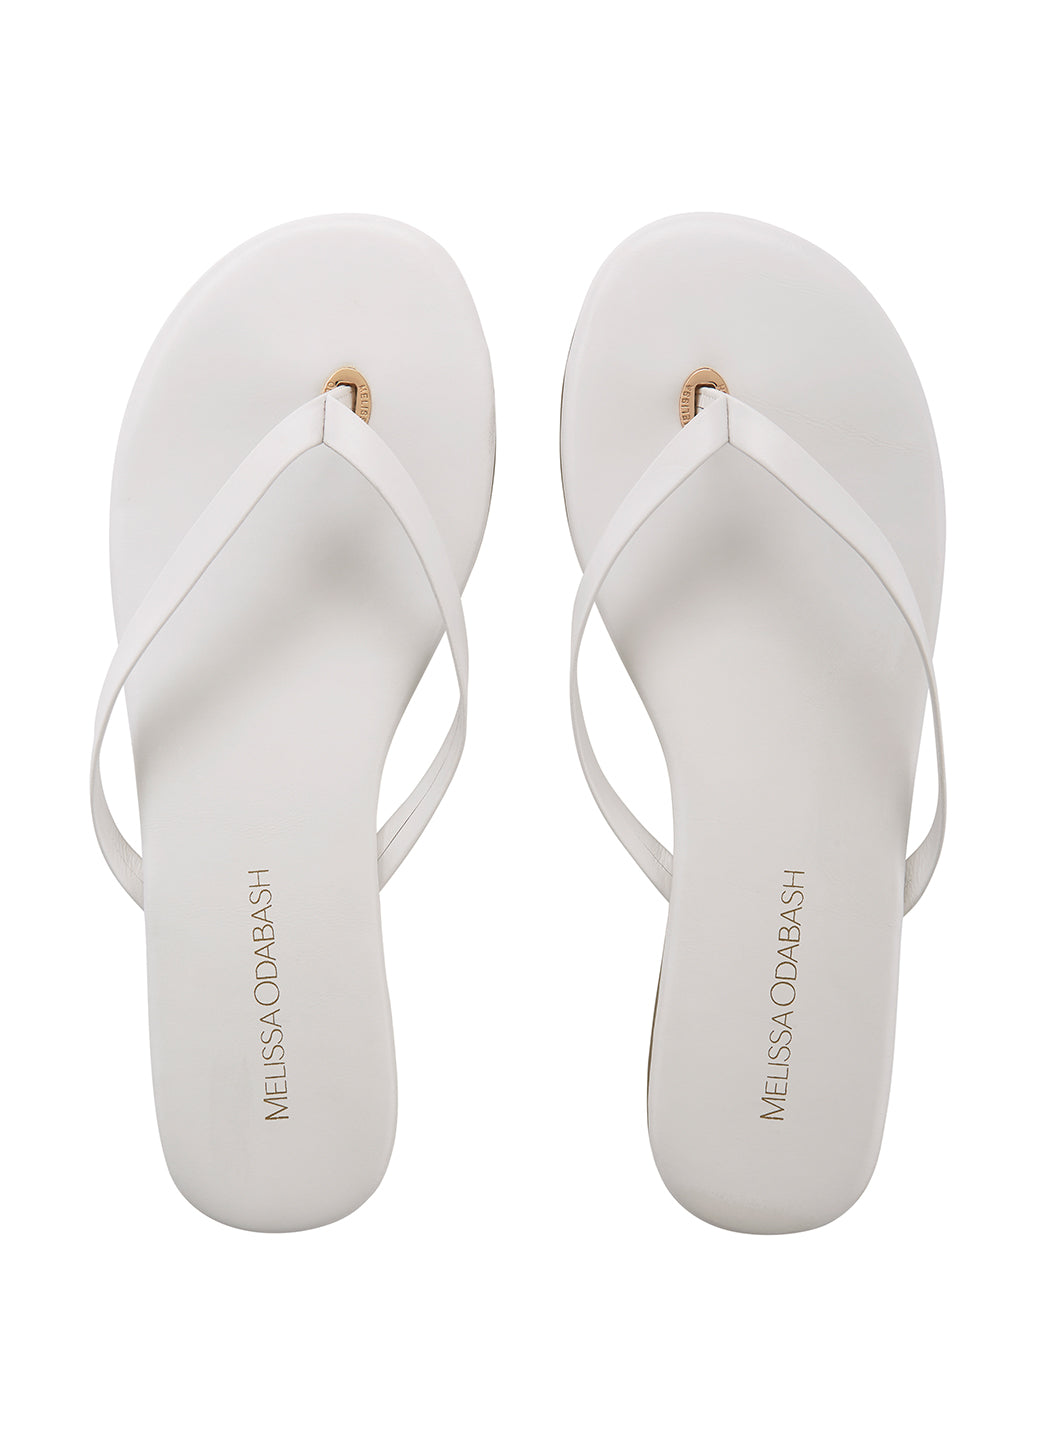 Melissa Odabash Leather Flip Flops White - Melissa Odabash Accessories